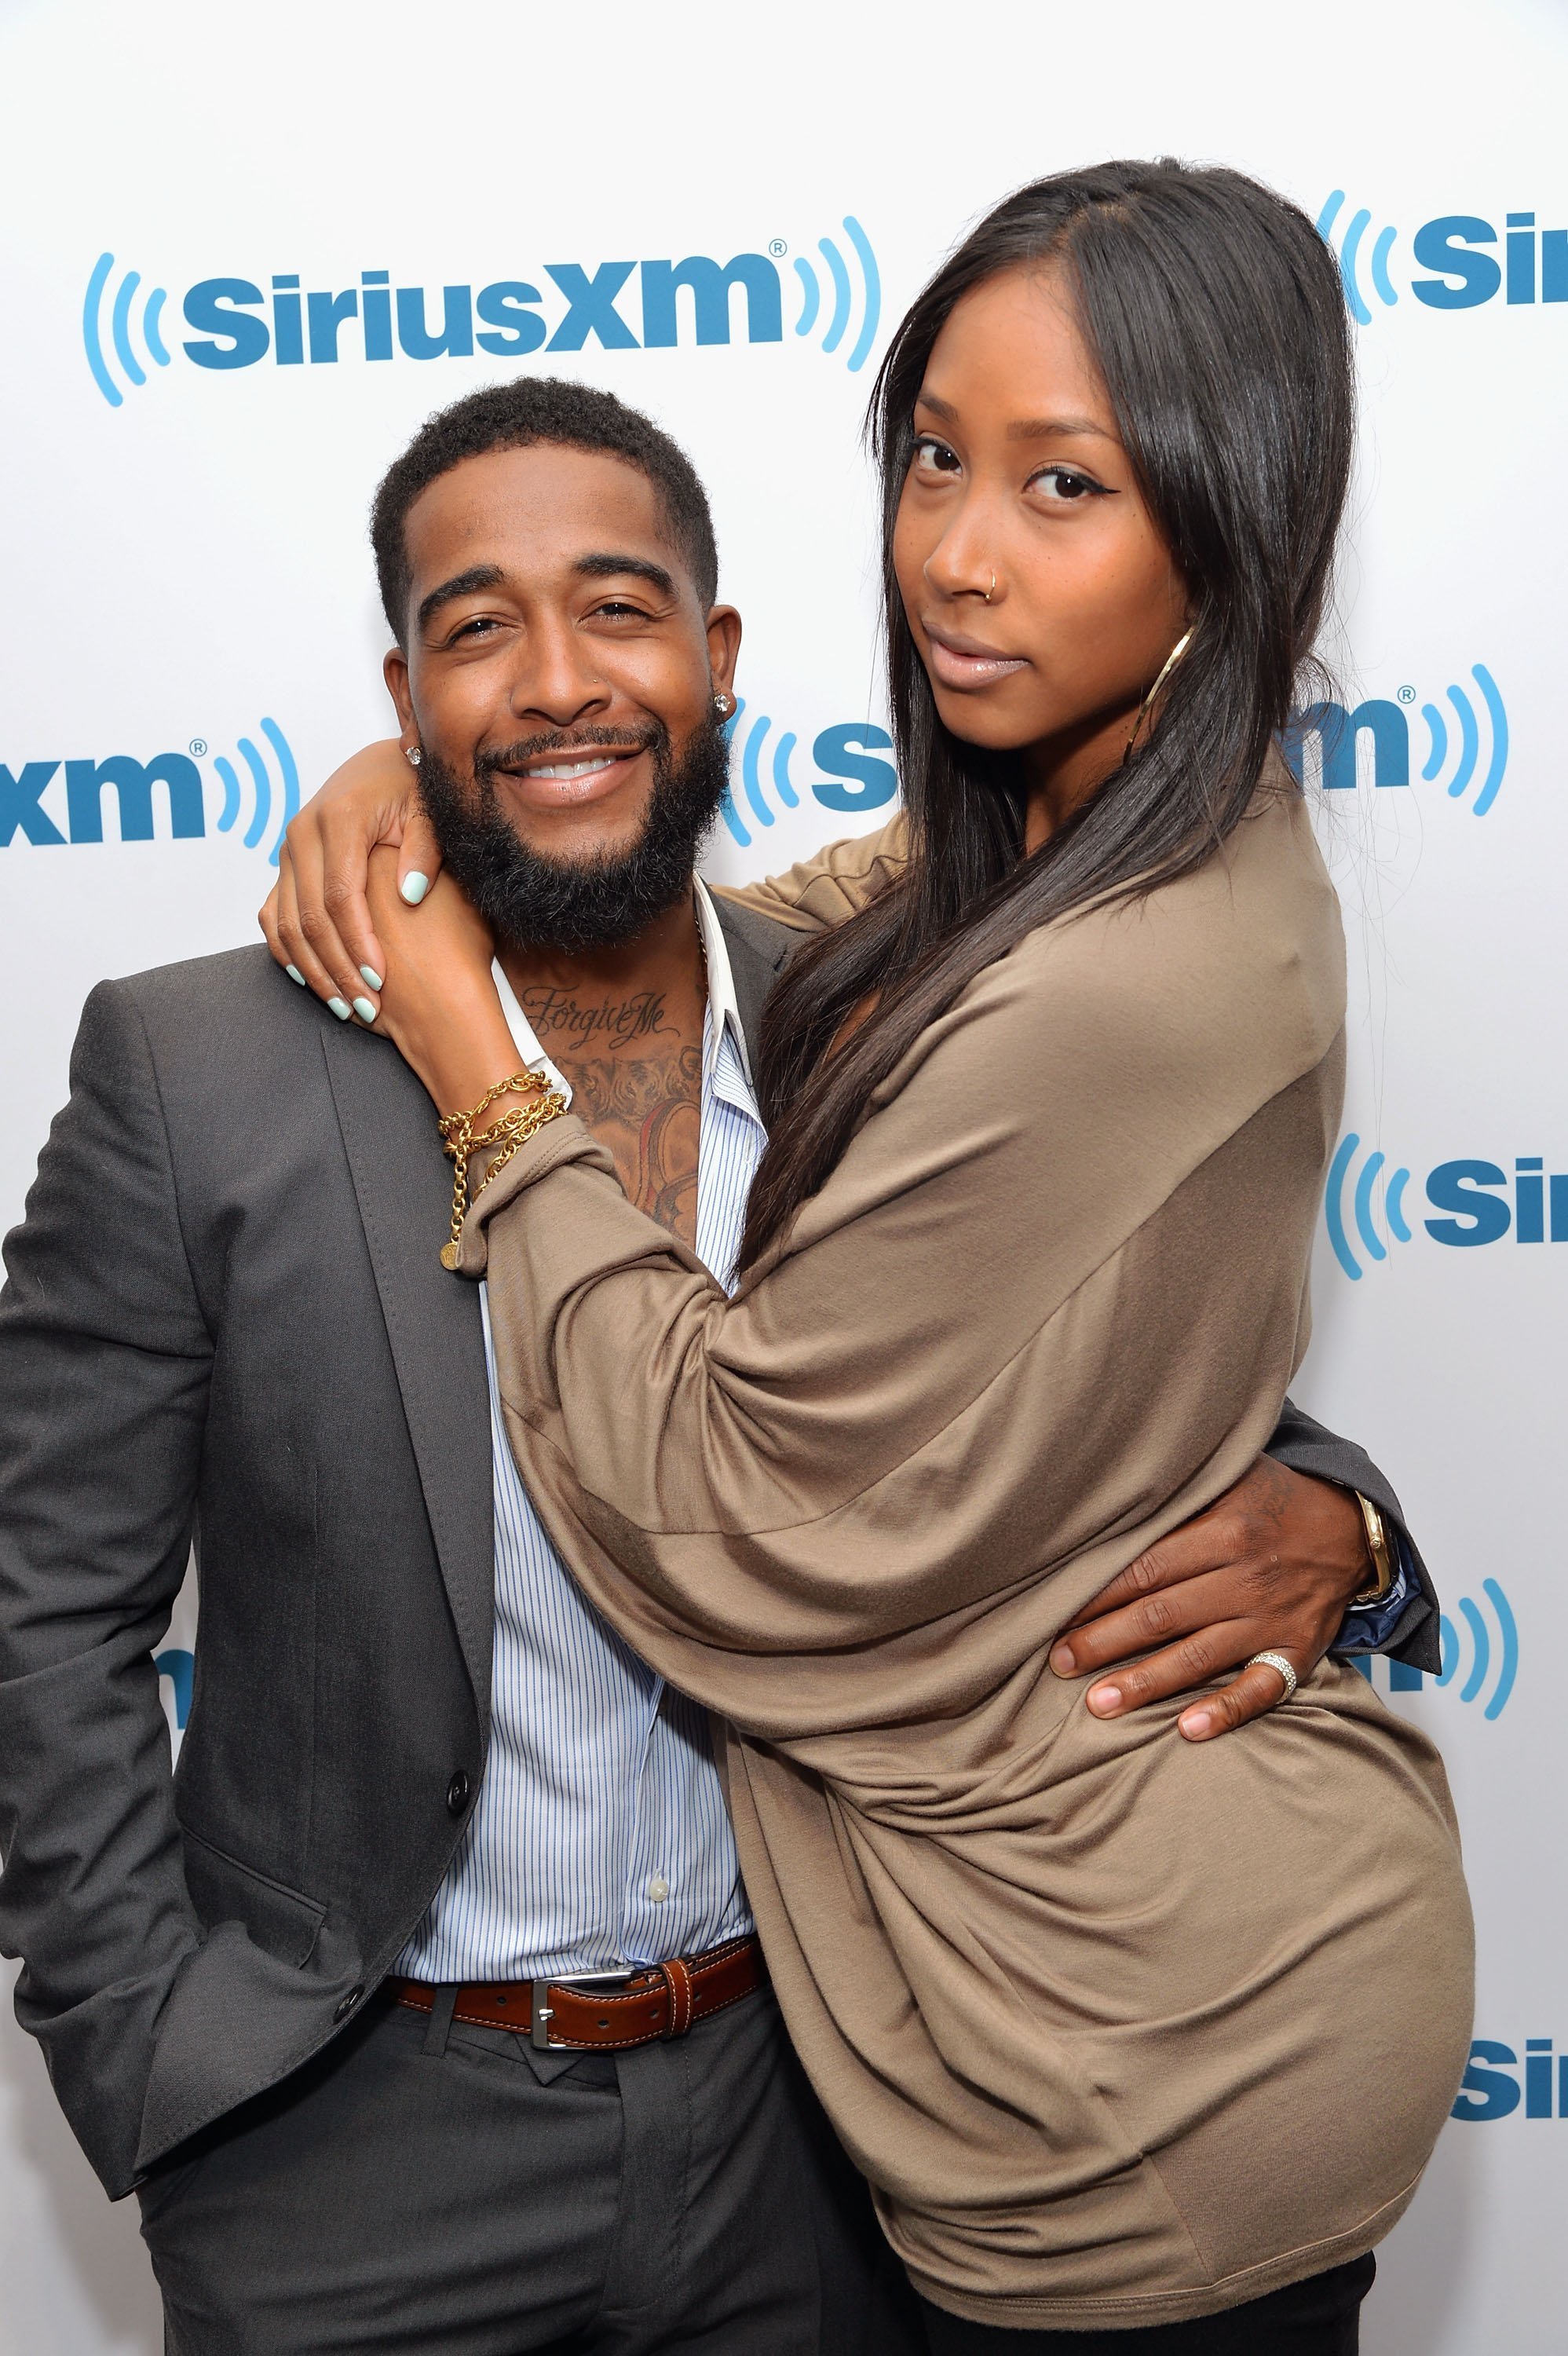 Omarion & Apryl Jones visit SiriusXM Studios on May 1, 2014 in New York City | Photo: Getty Images